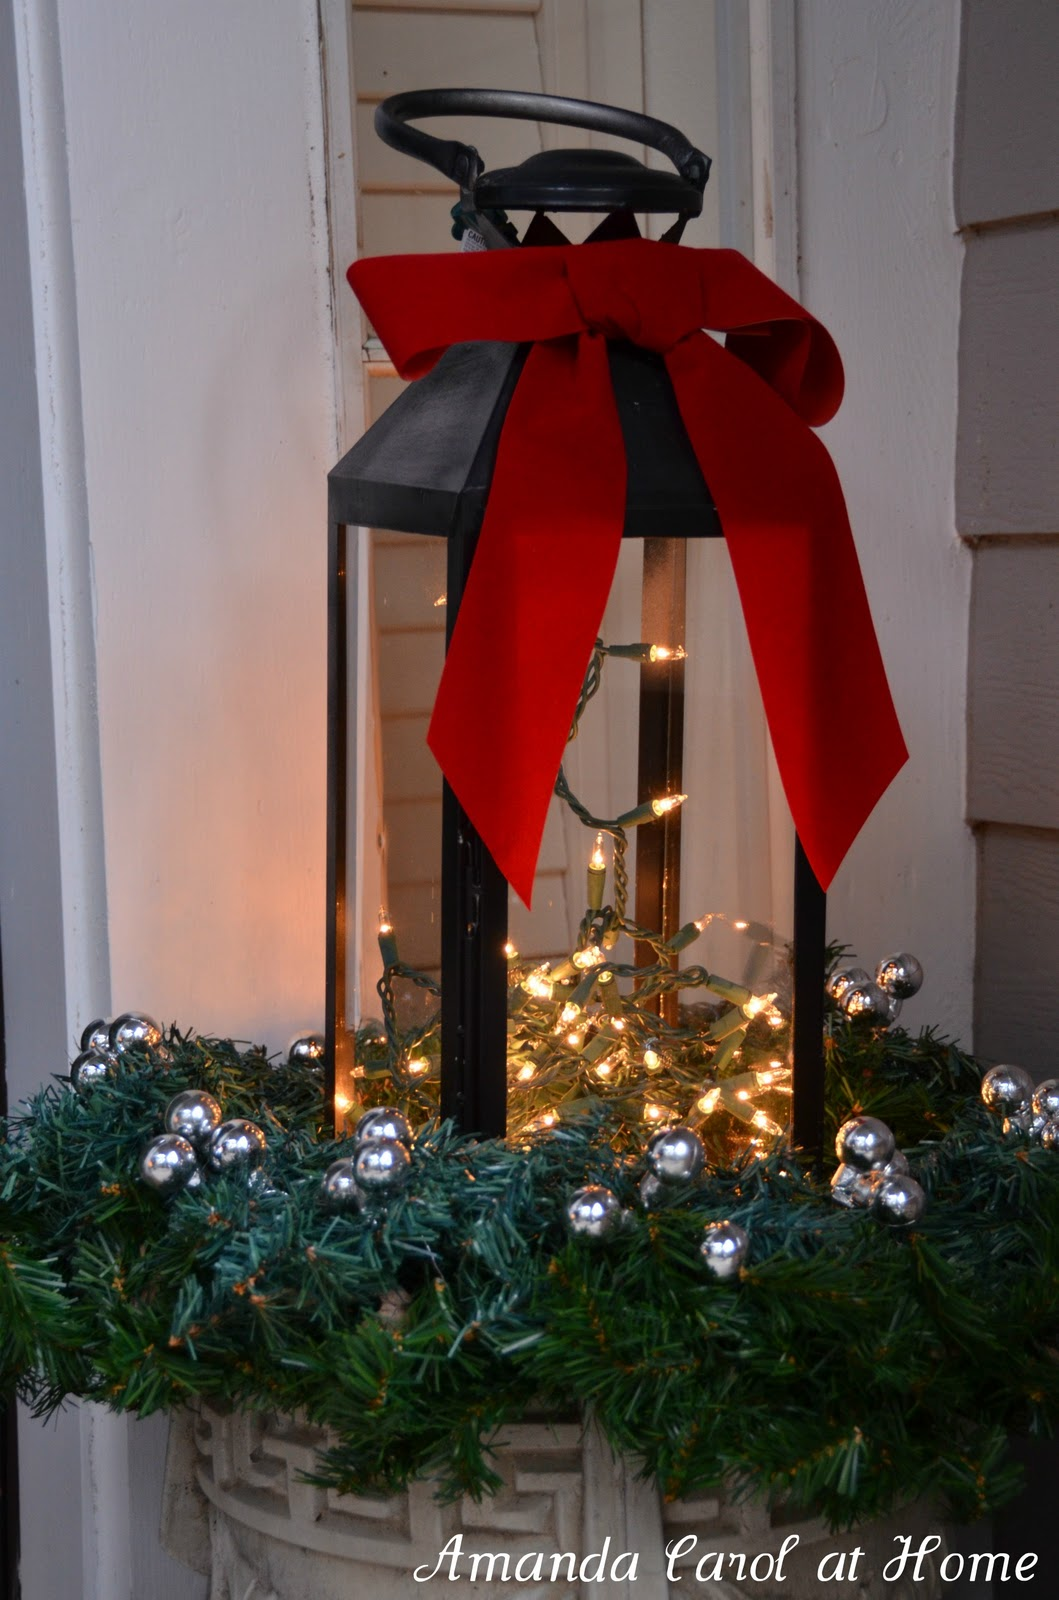 Christmas window box filler - Lantern In Outdoor Planter For Winter Amanda Carol At Home Via Remodelaholic